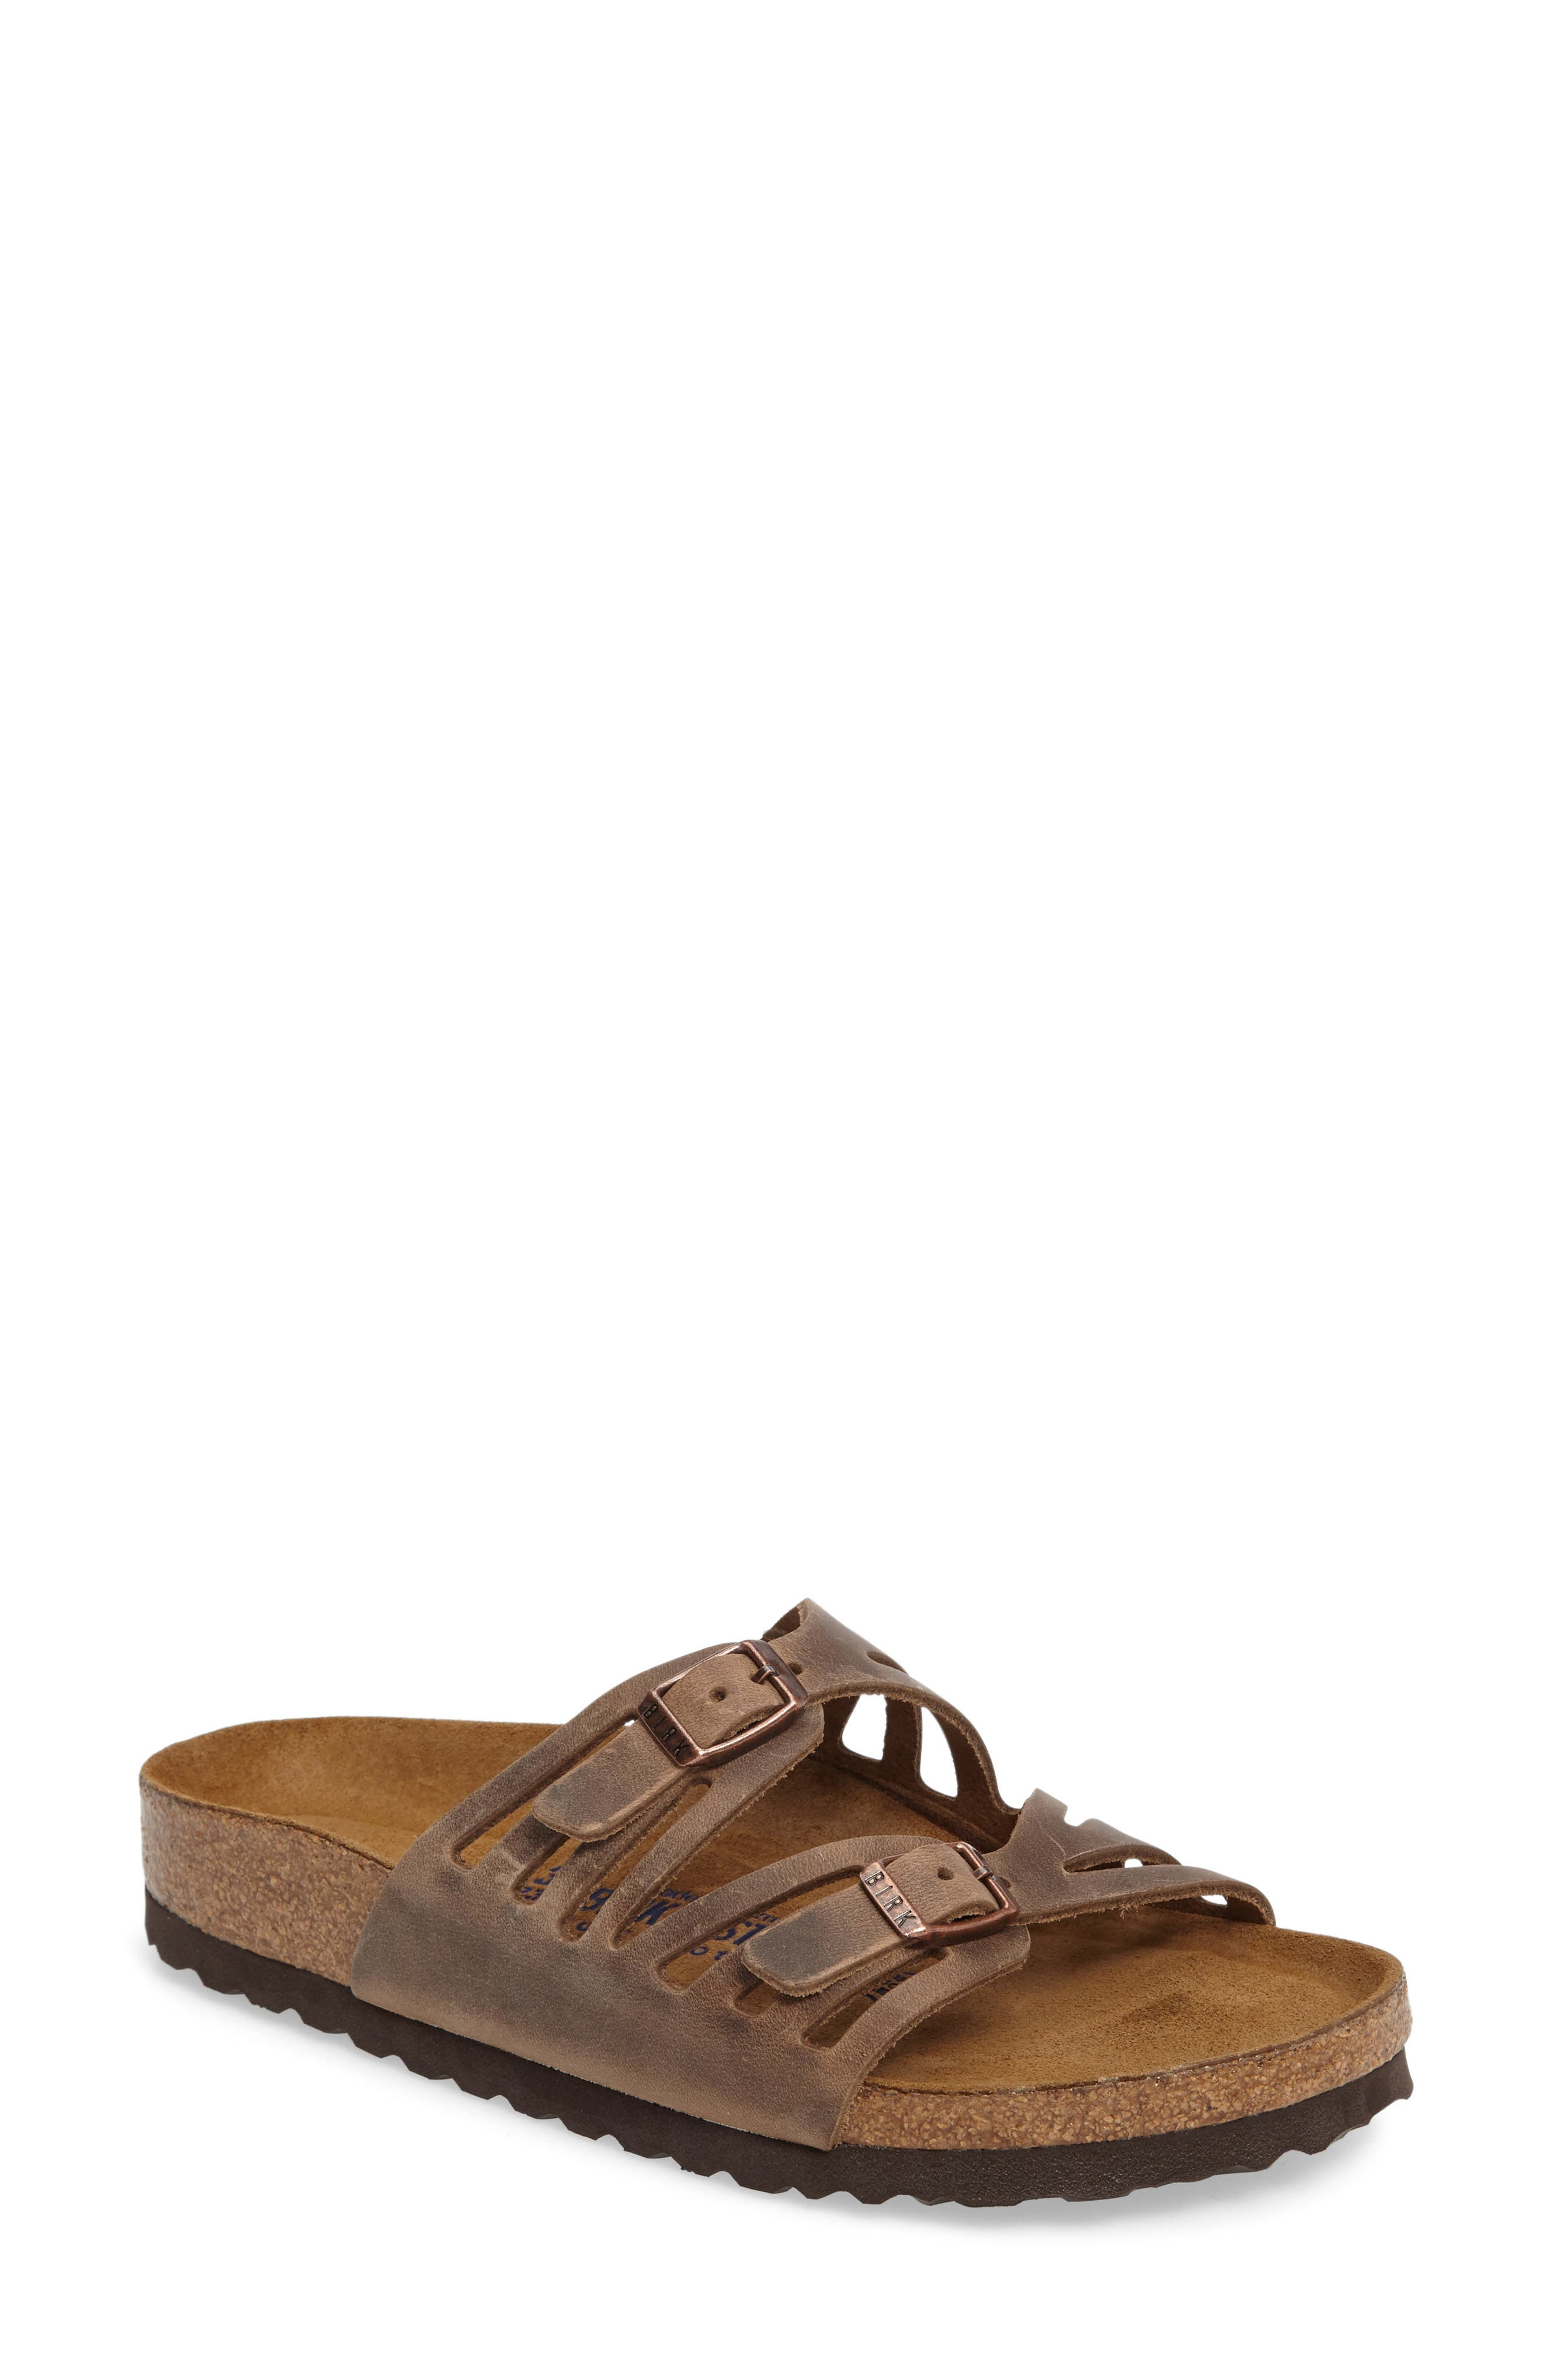 Granada Soft Footbed Oiled Leather Sandal,                             Alternate thumbnail 2, color,                             TOBACCO